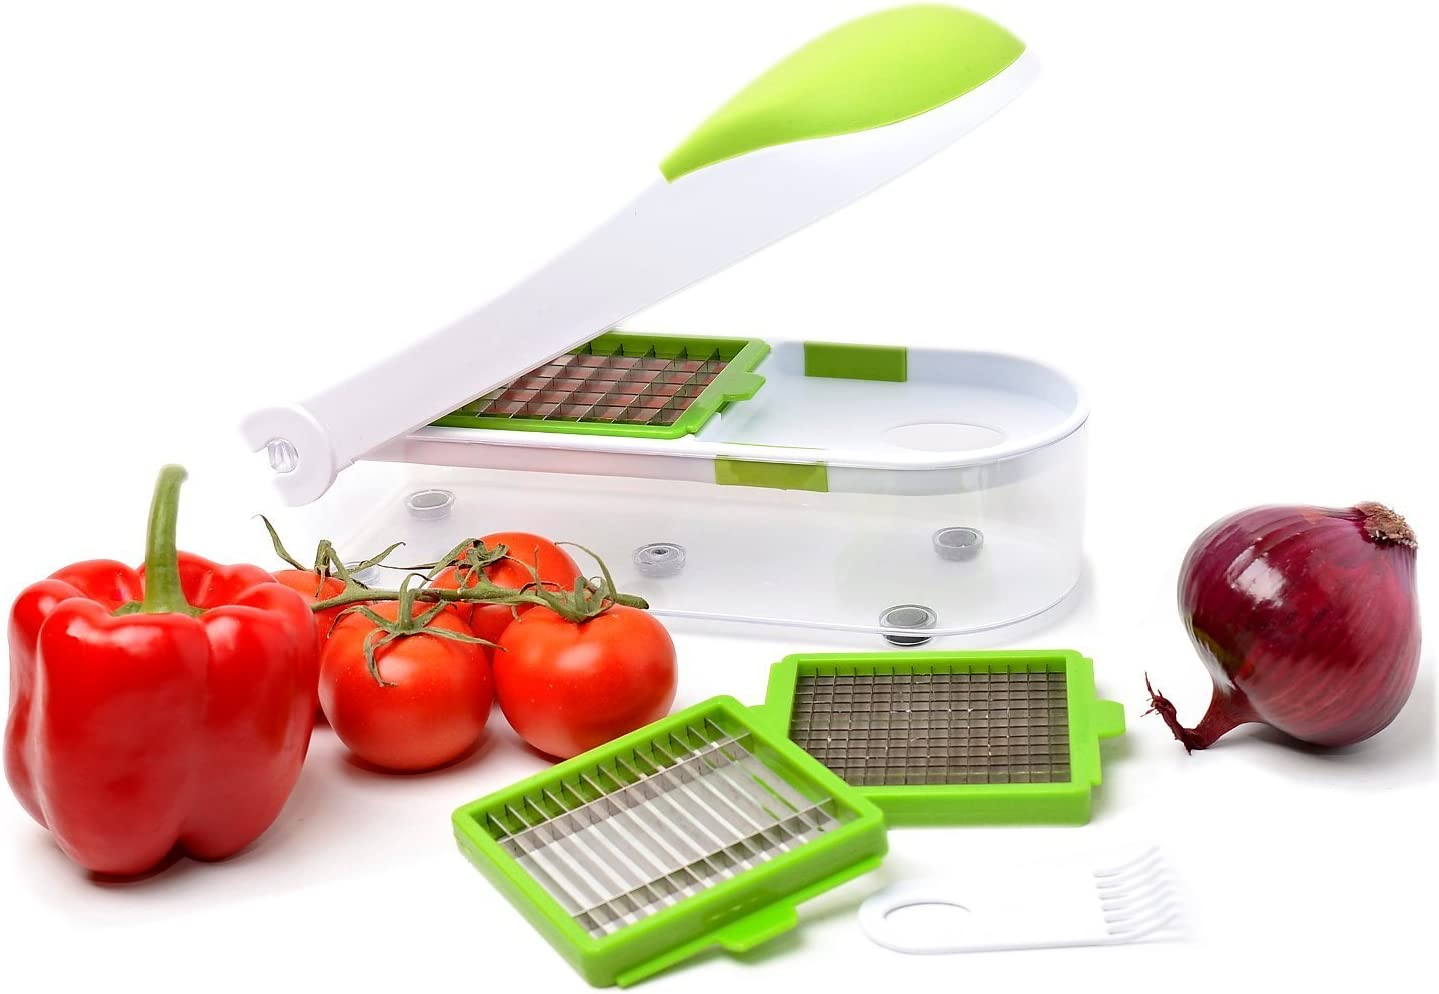 Family Home Professional Grade Onion, Vegetable, Fruit and Cheese Chopper, Dicer & Slicer